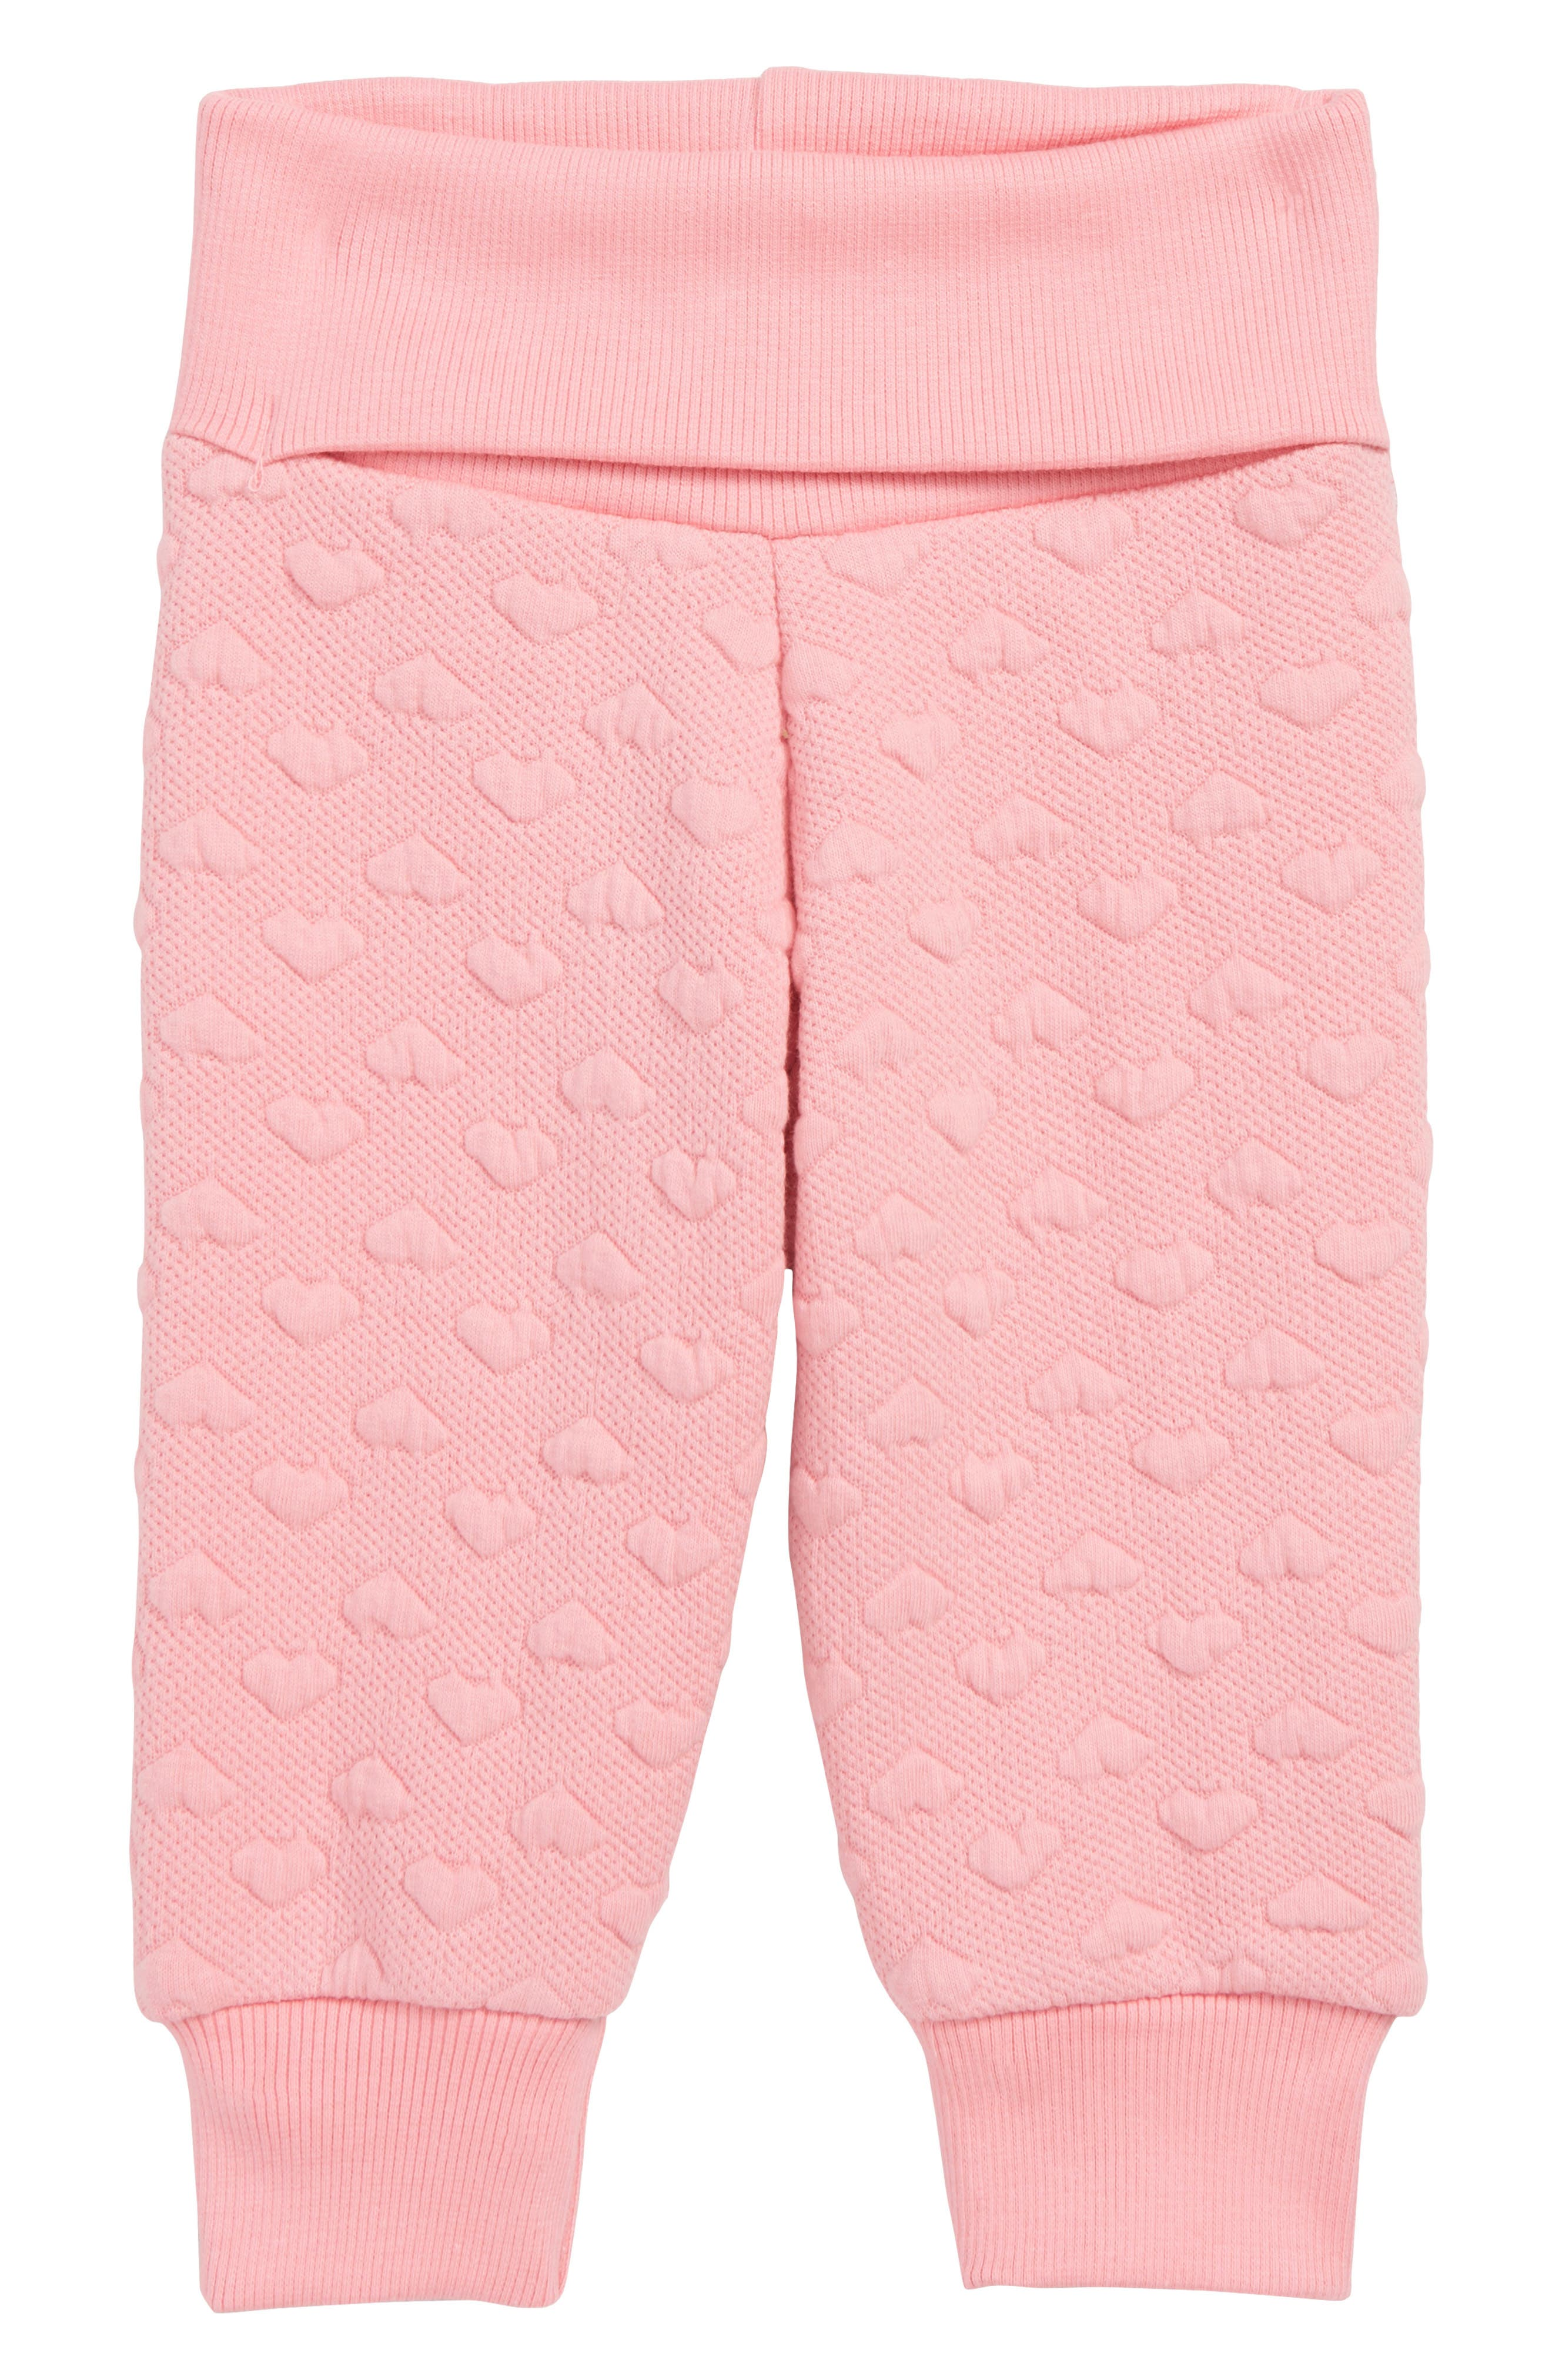 Infant Girls Hatley Quilted Jogger Pants Size 69M  Pink